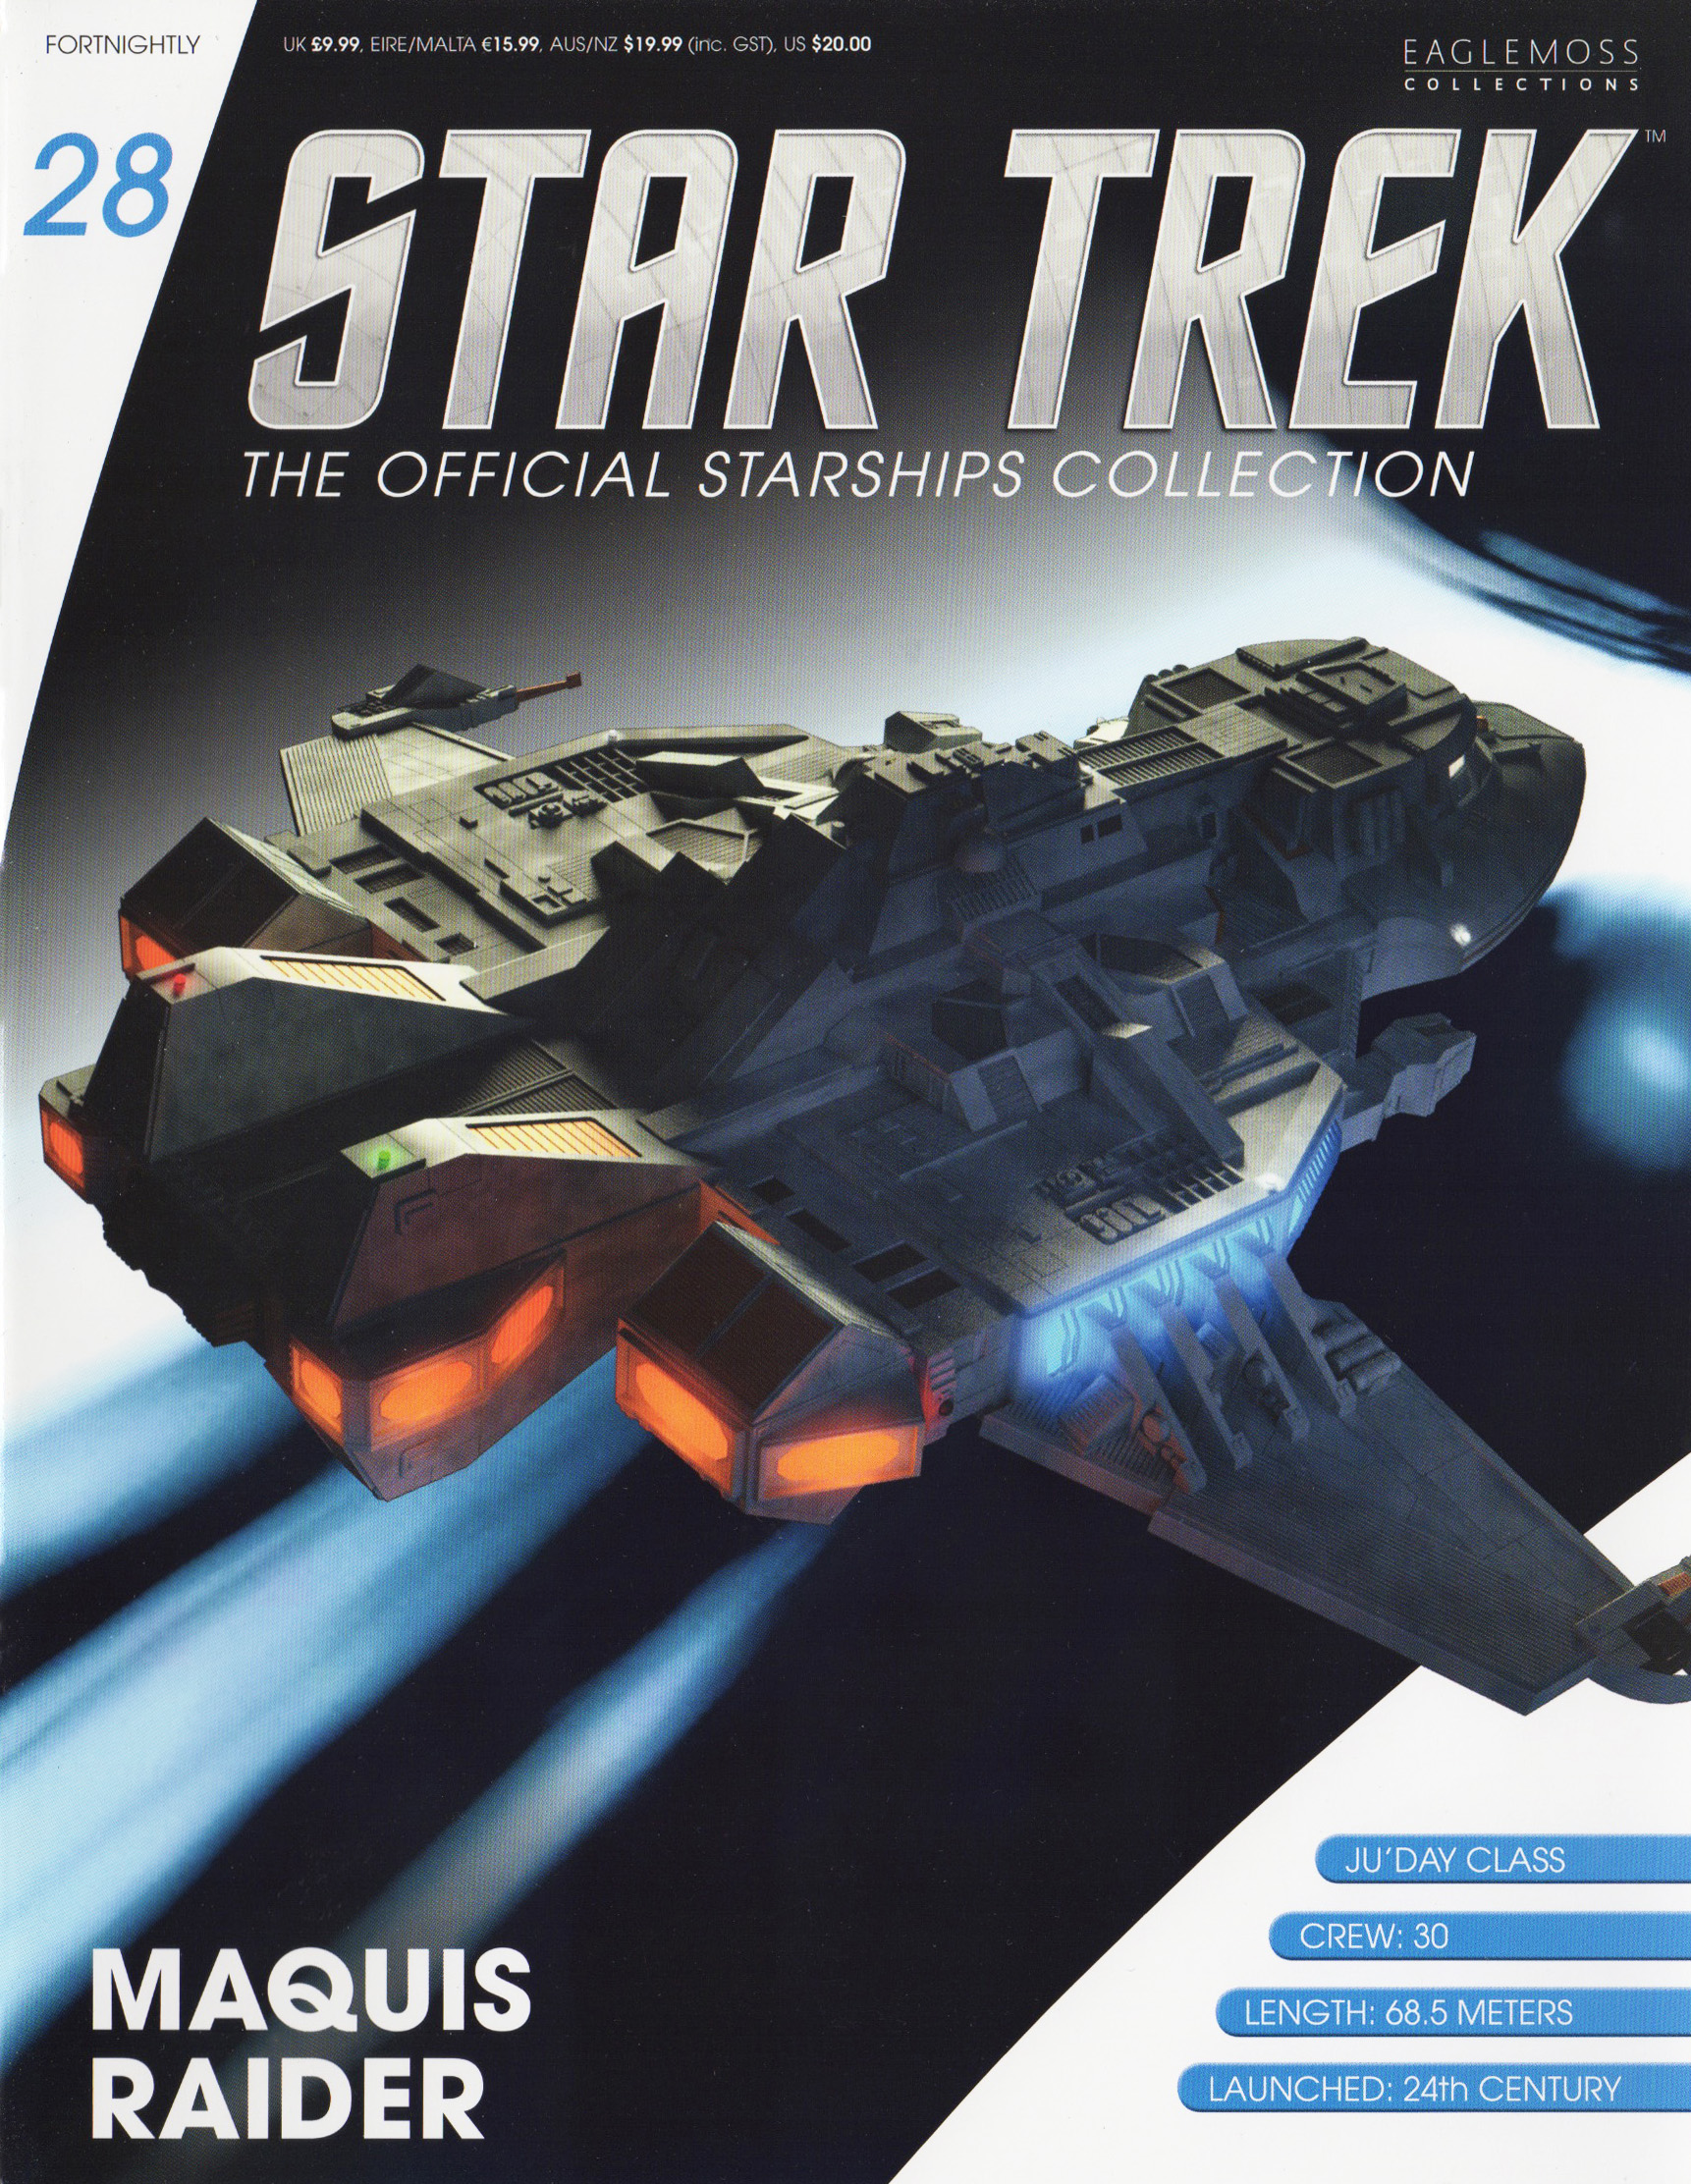 Eaglemoss Star Trek Starships Issue 28